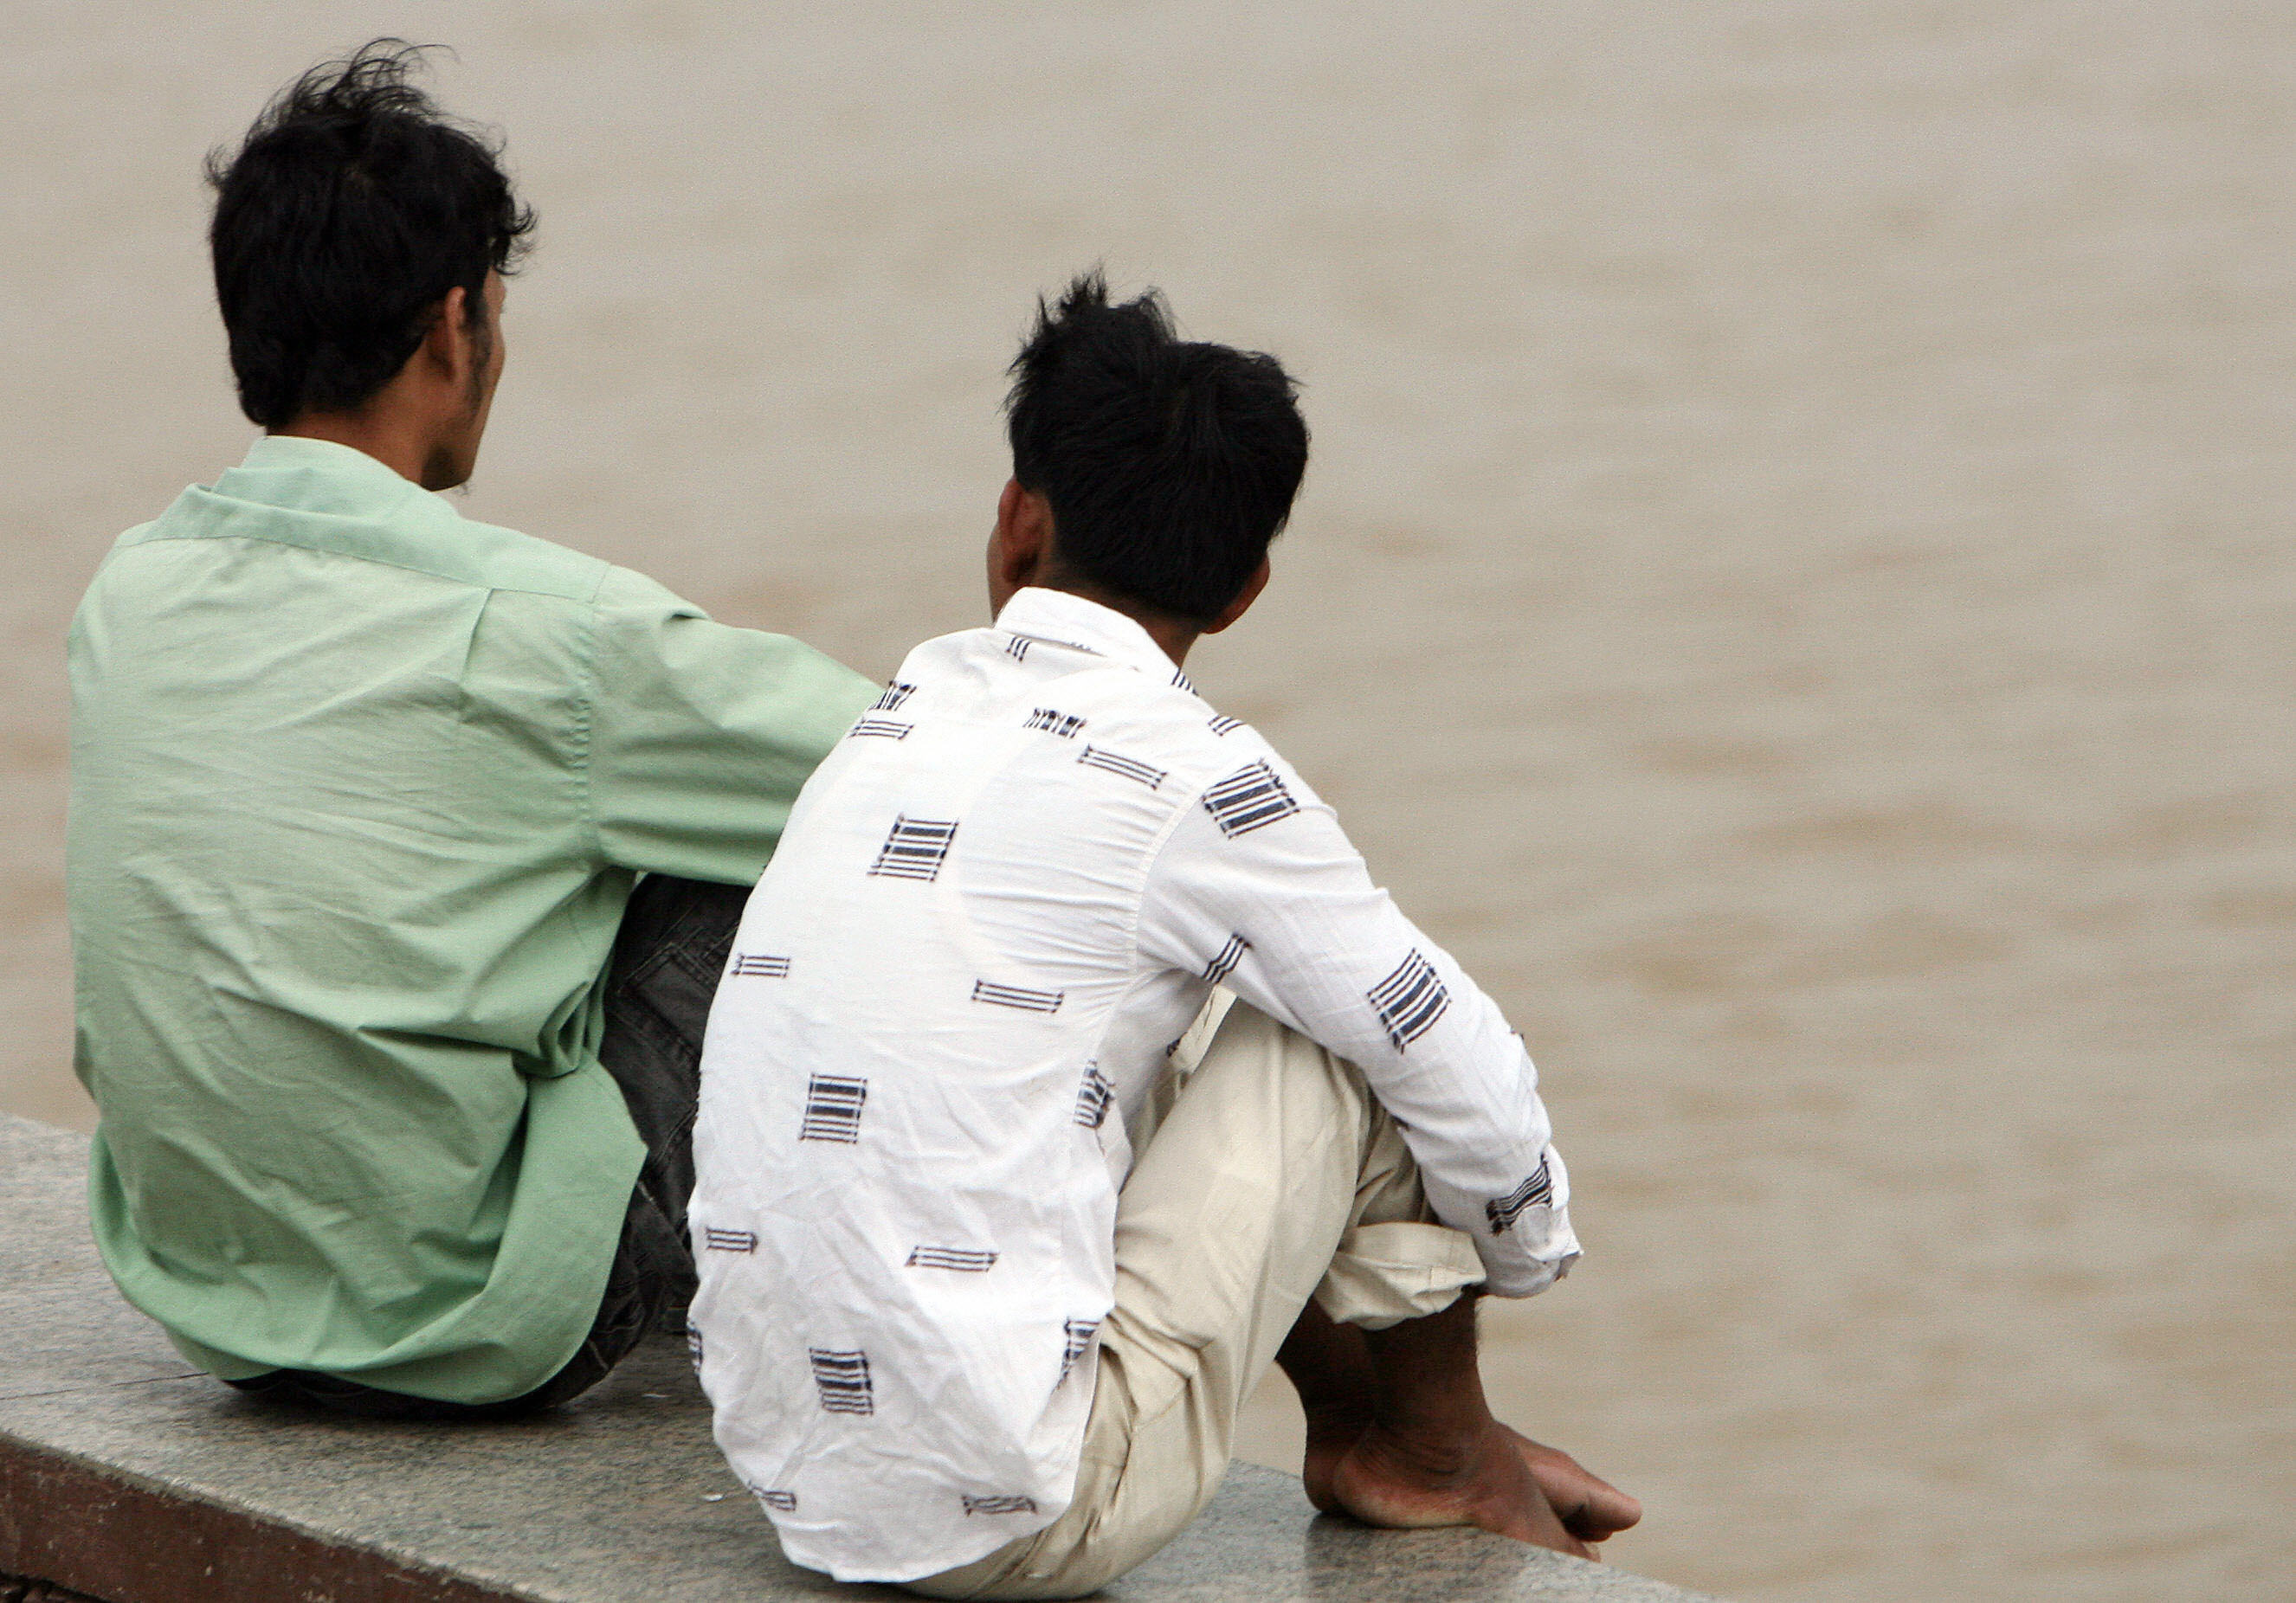 Two young men in Cambodia